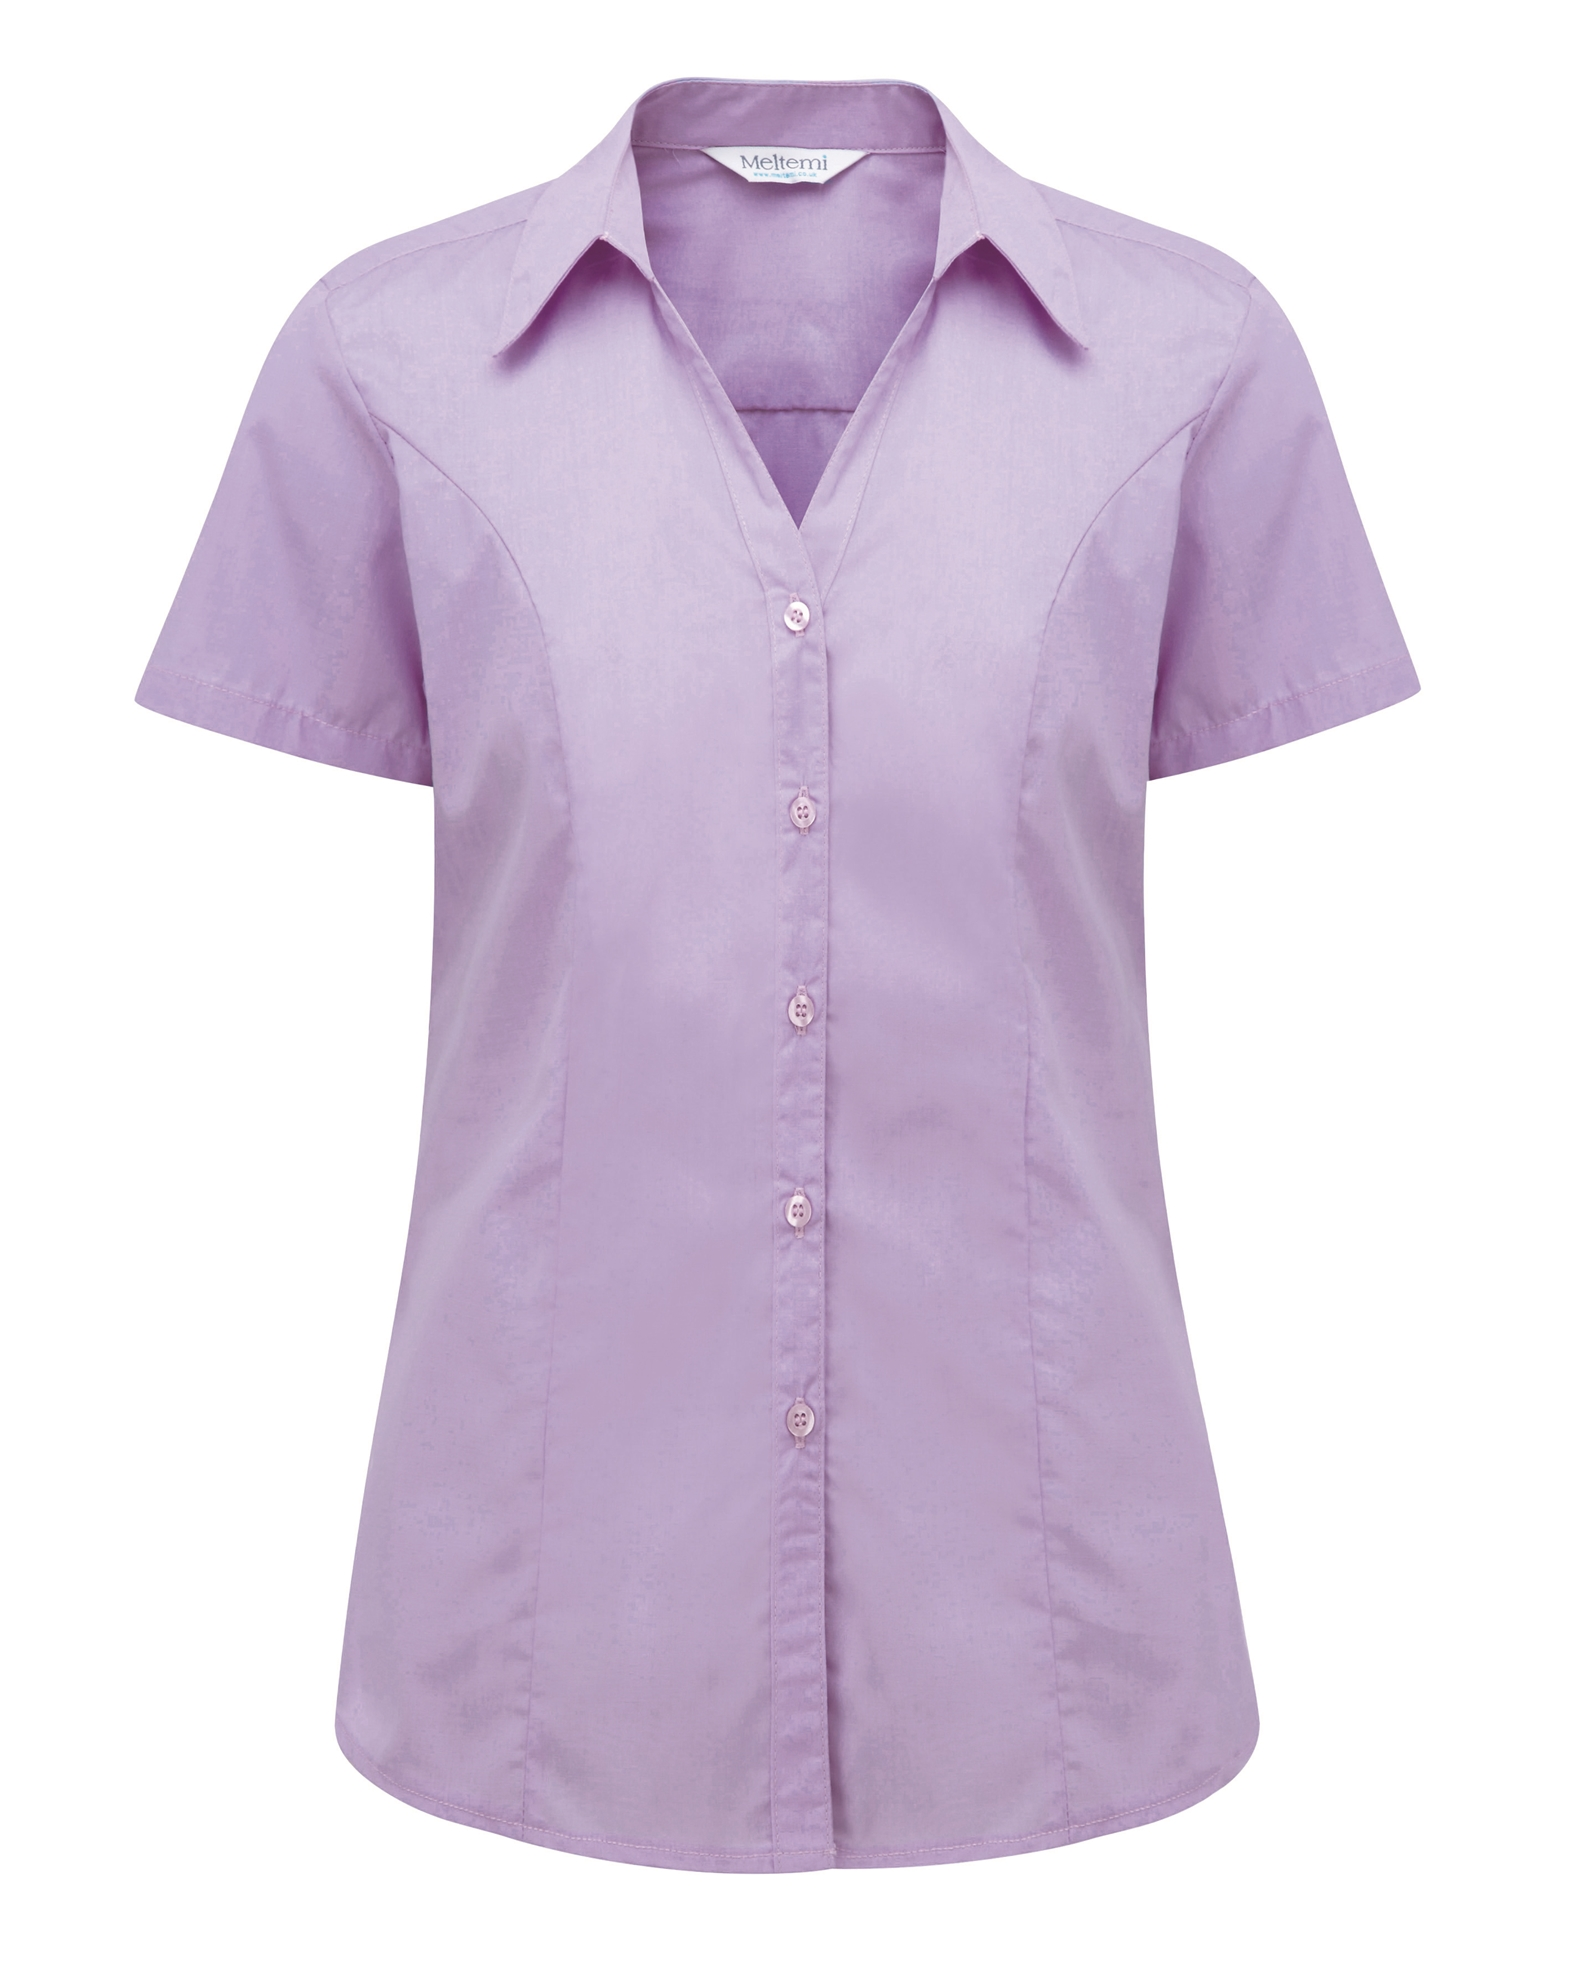 Picture of Semi-Fitted Polycotton Blouse - Plain Lilac